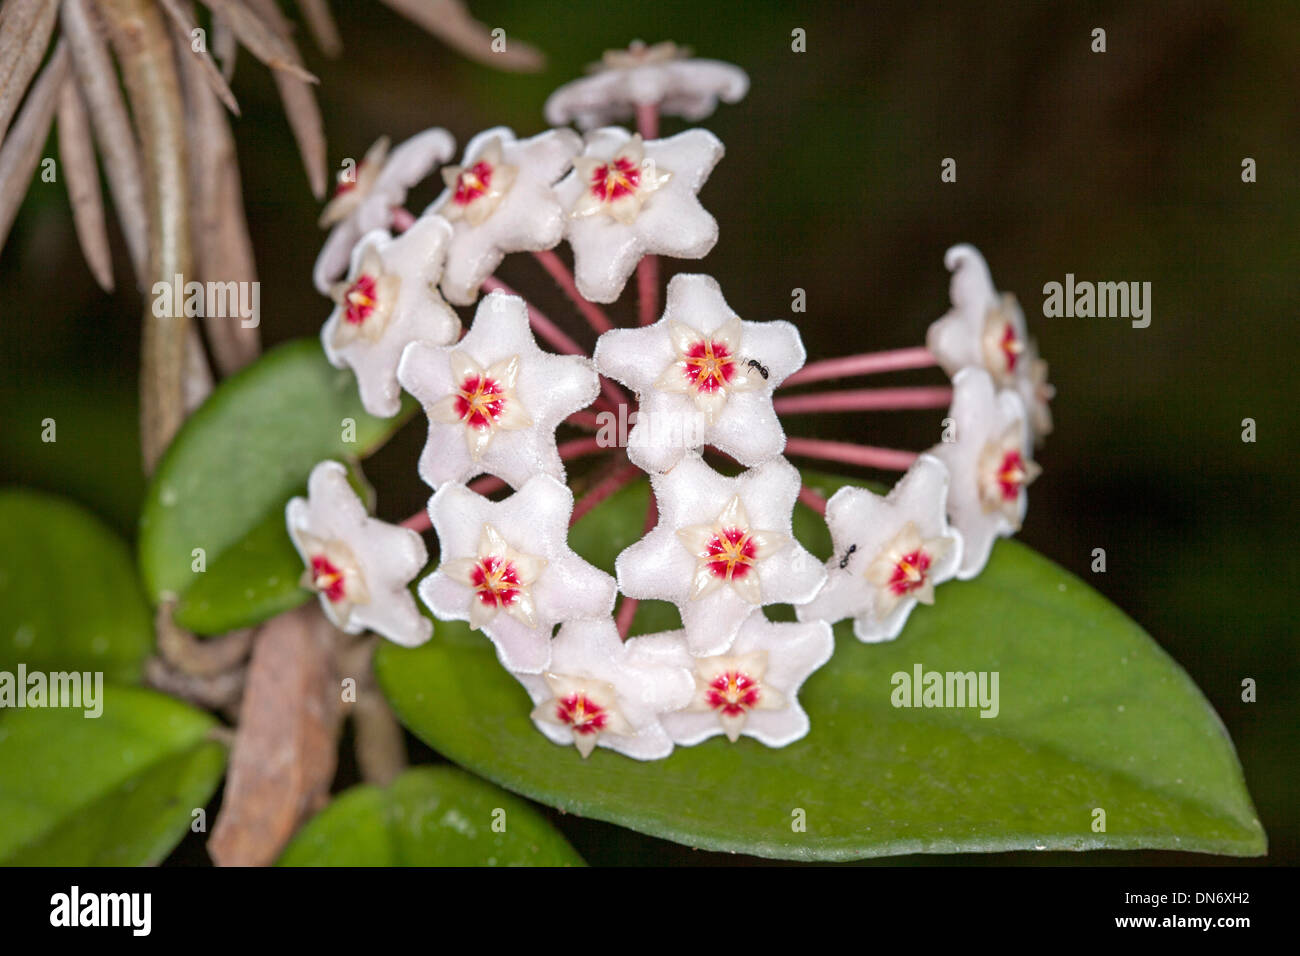 Cluster of attractive red and white flowers and green leaves of Hoya     Cluster of attractive red and white flowers and green leaves of Hoya  carnosa   wax flower  Australian native climber